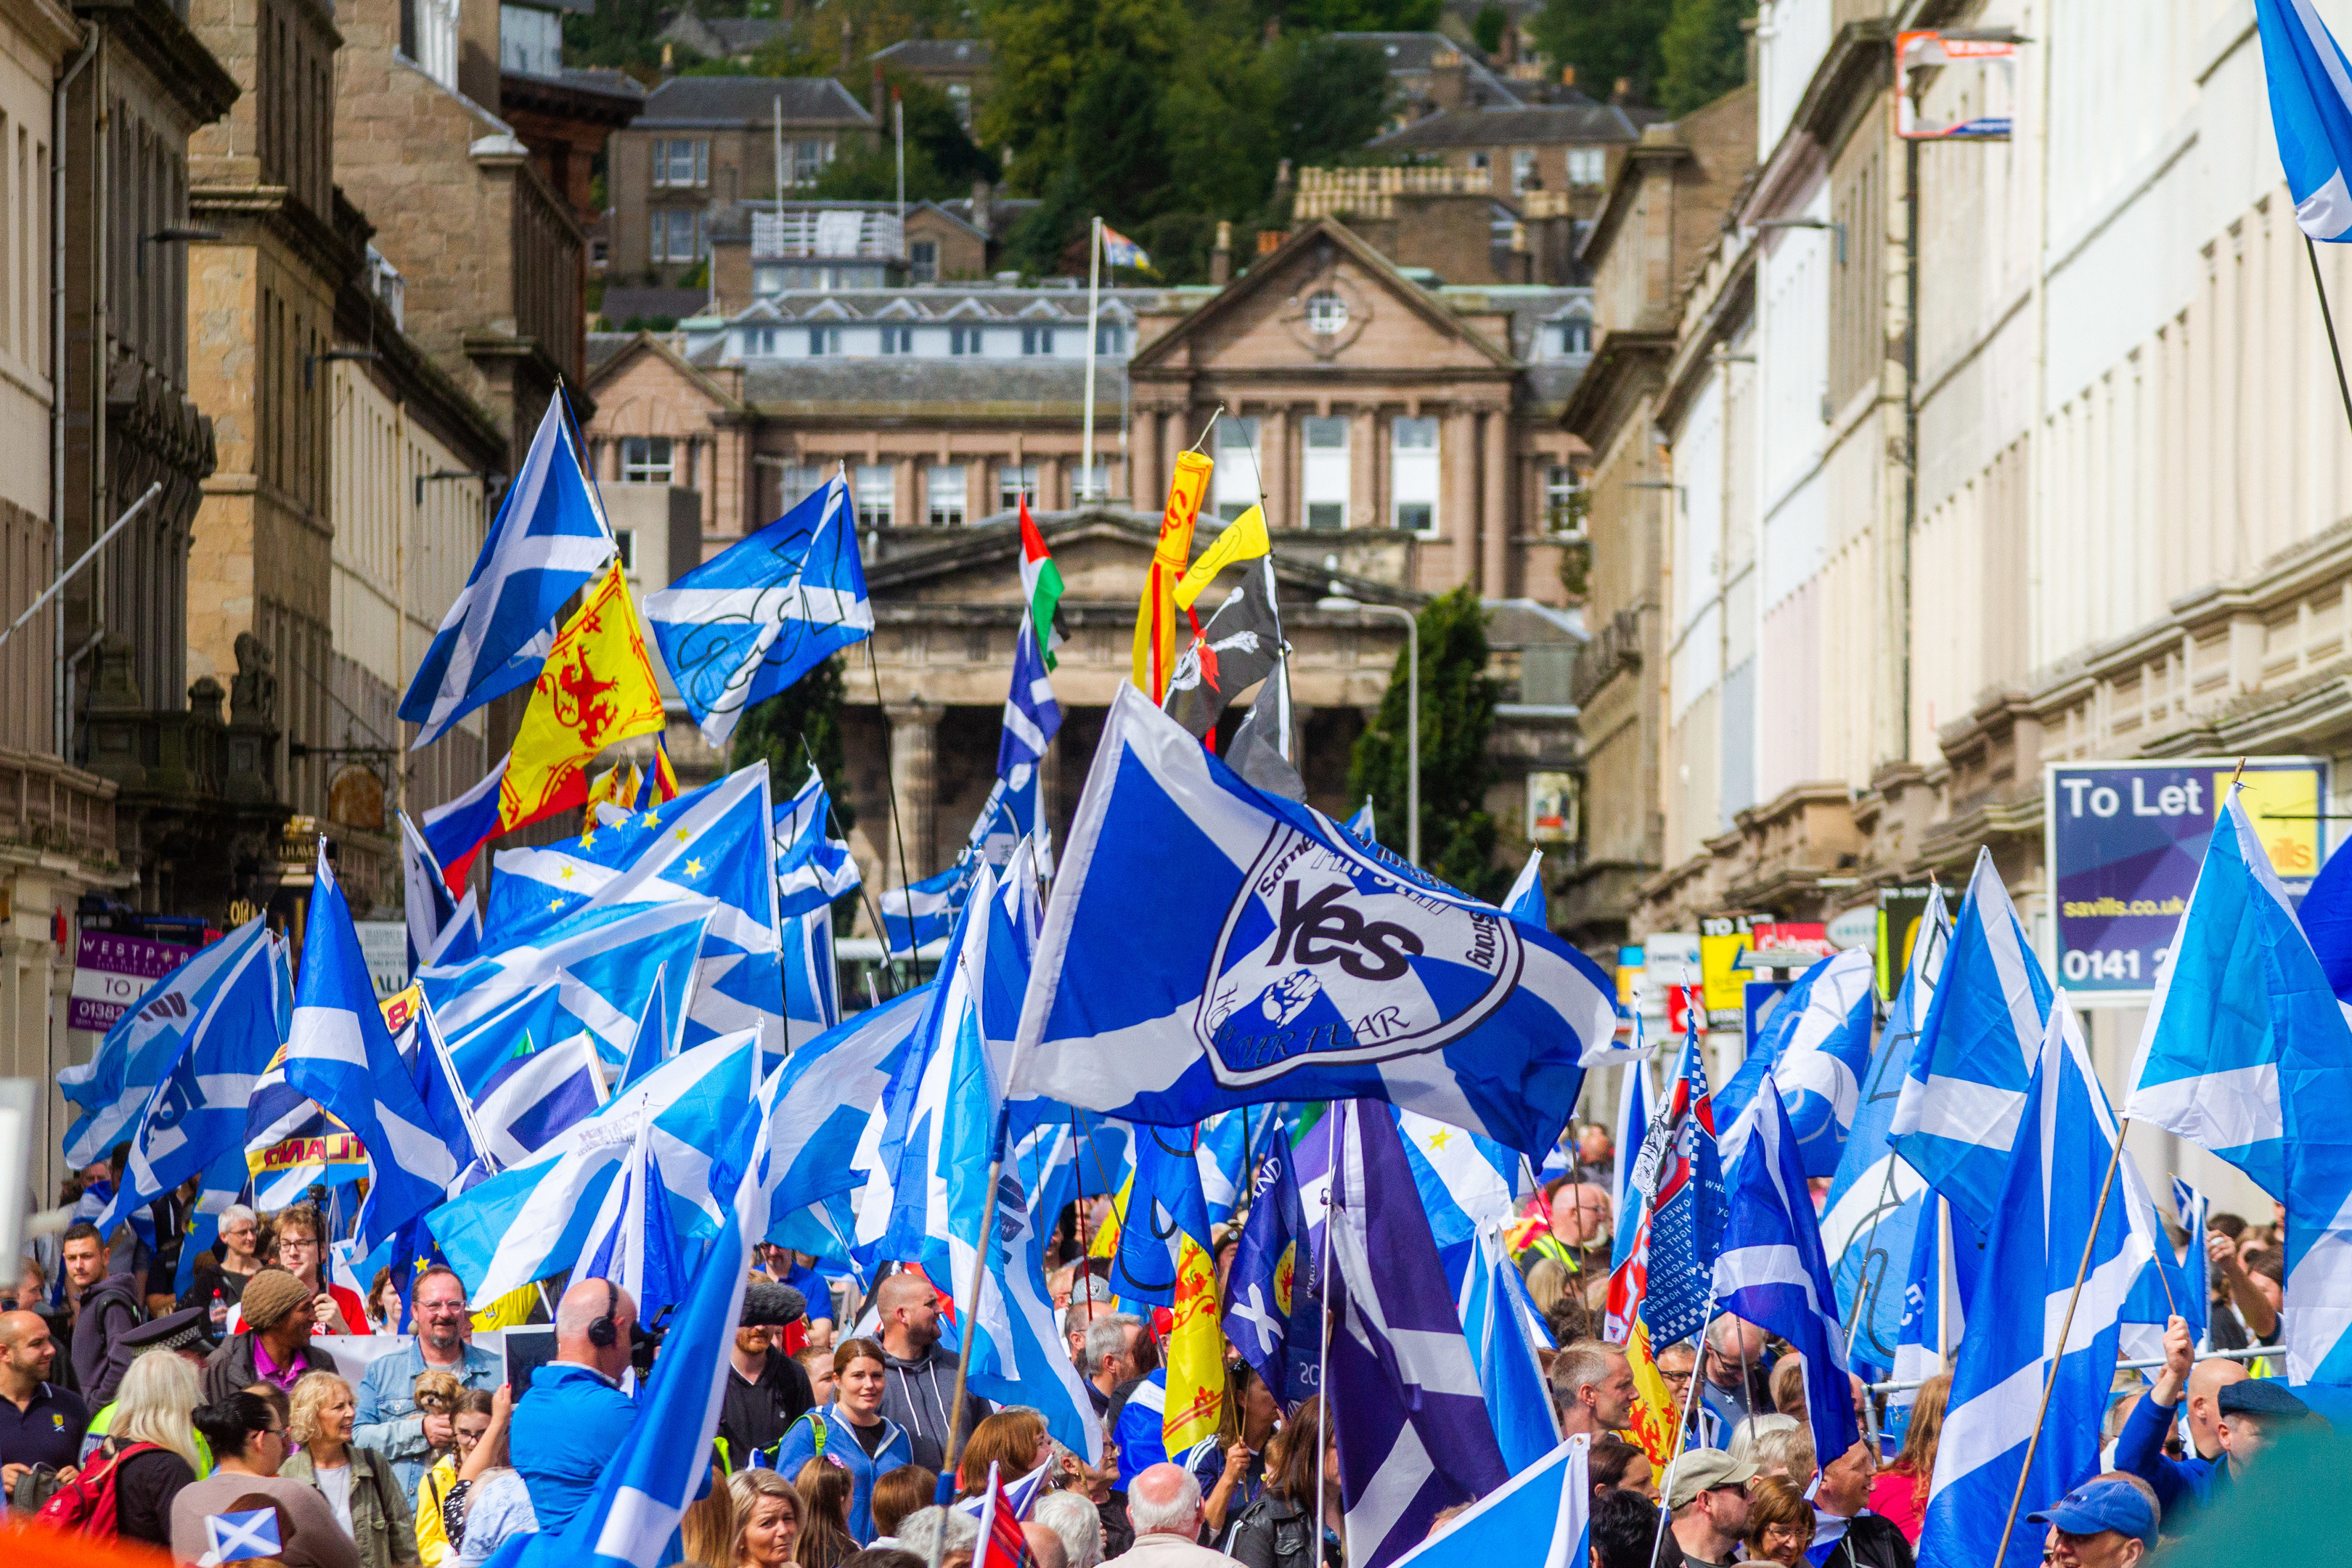 Thousands took to the streets of Dundee for a pro-independence march last year.